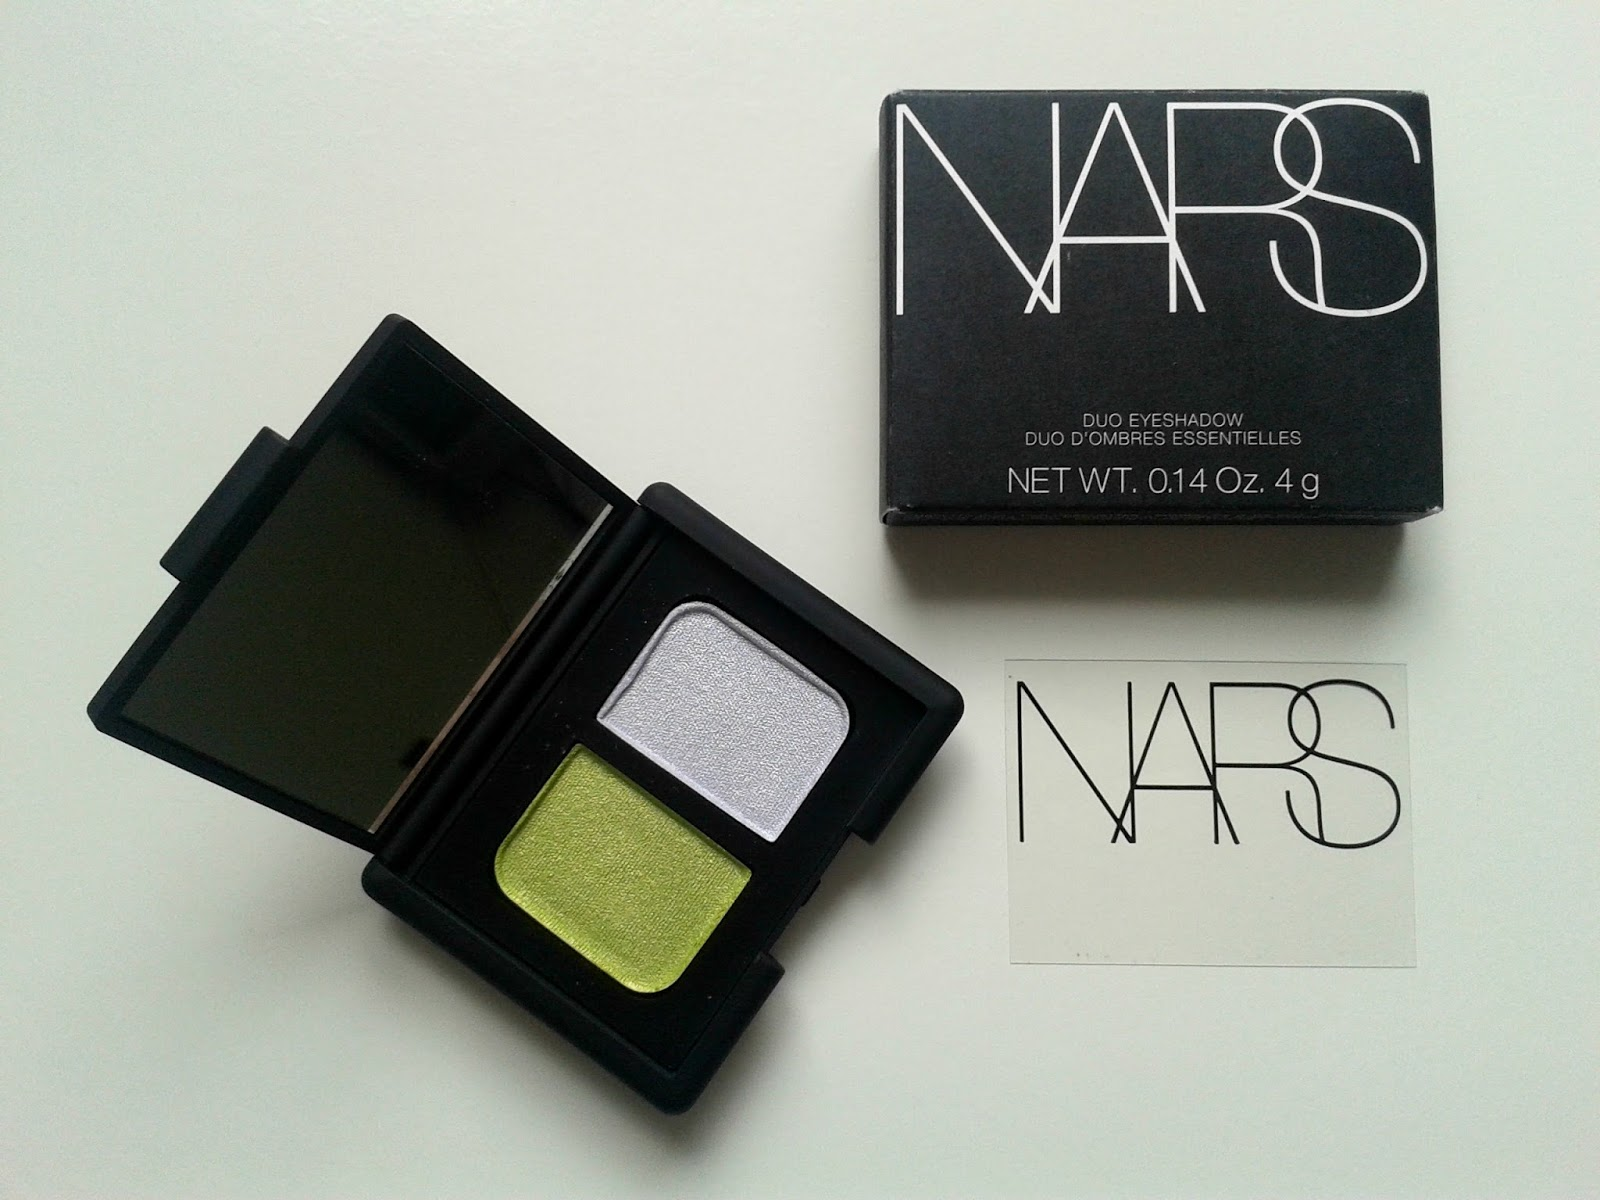 NARS Tropical Princess Eyeshadow Duo Beauty Review Packaging